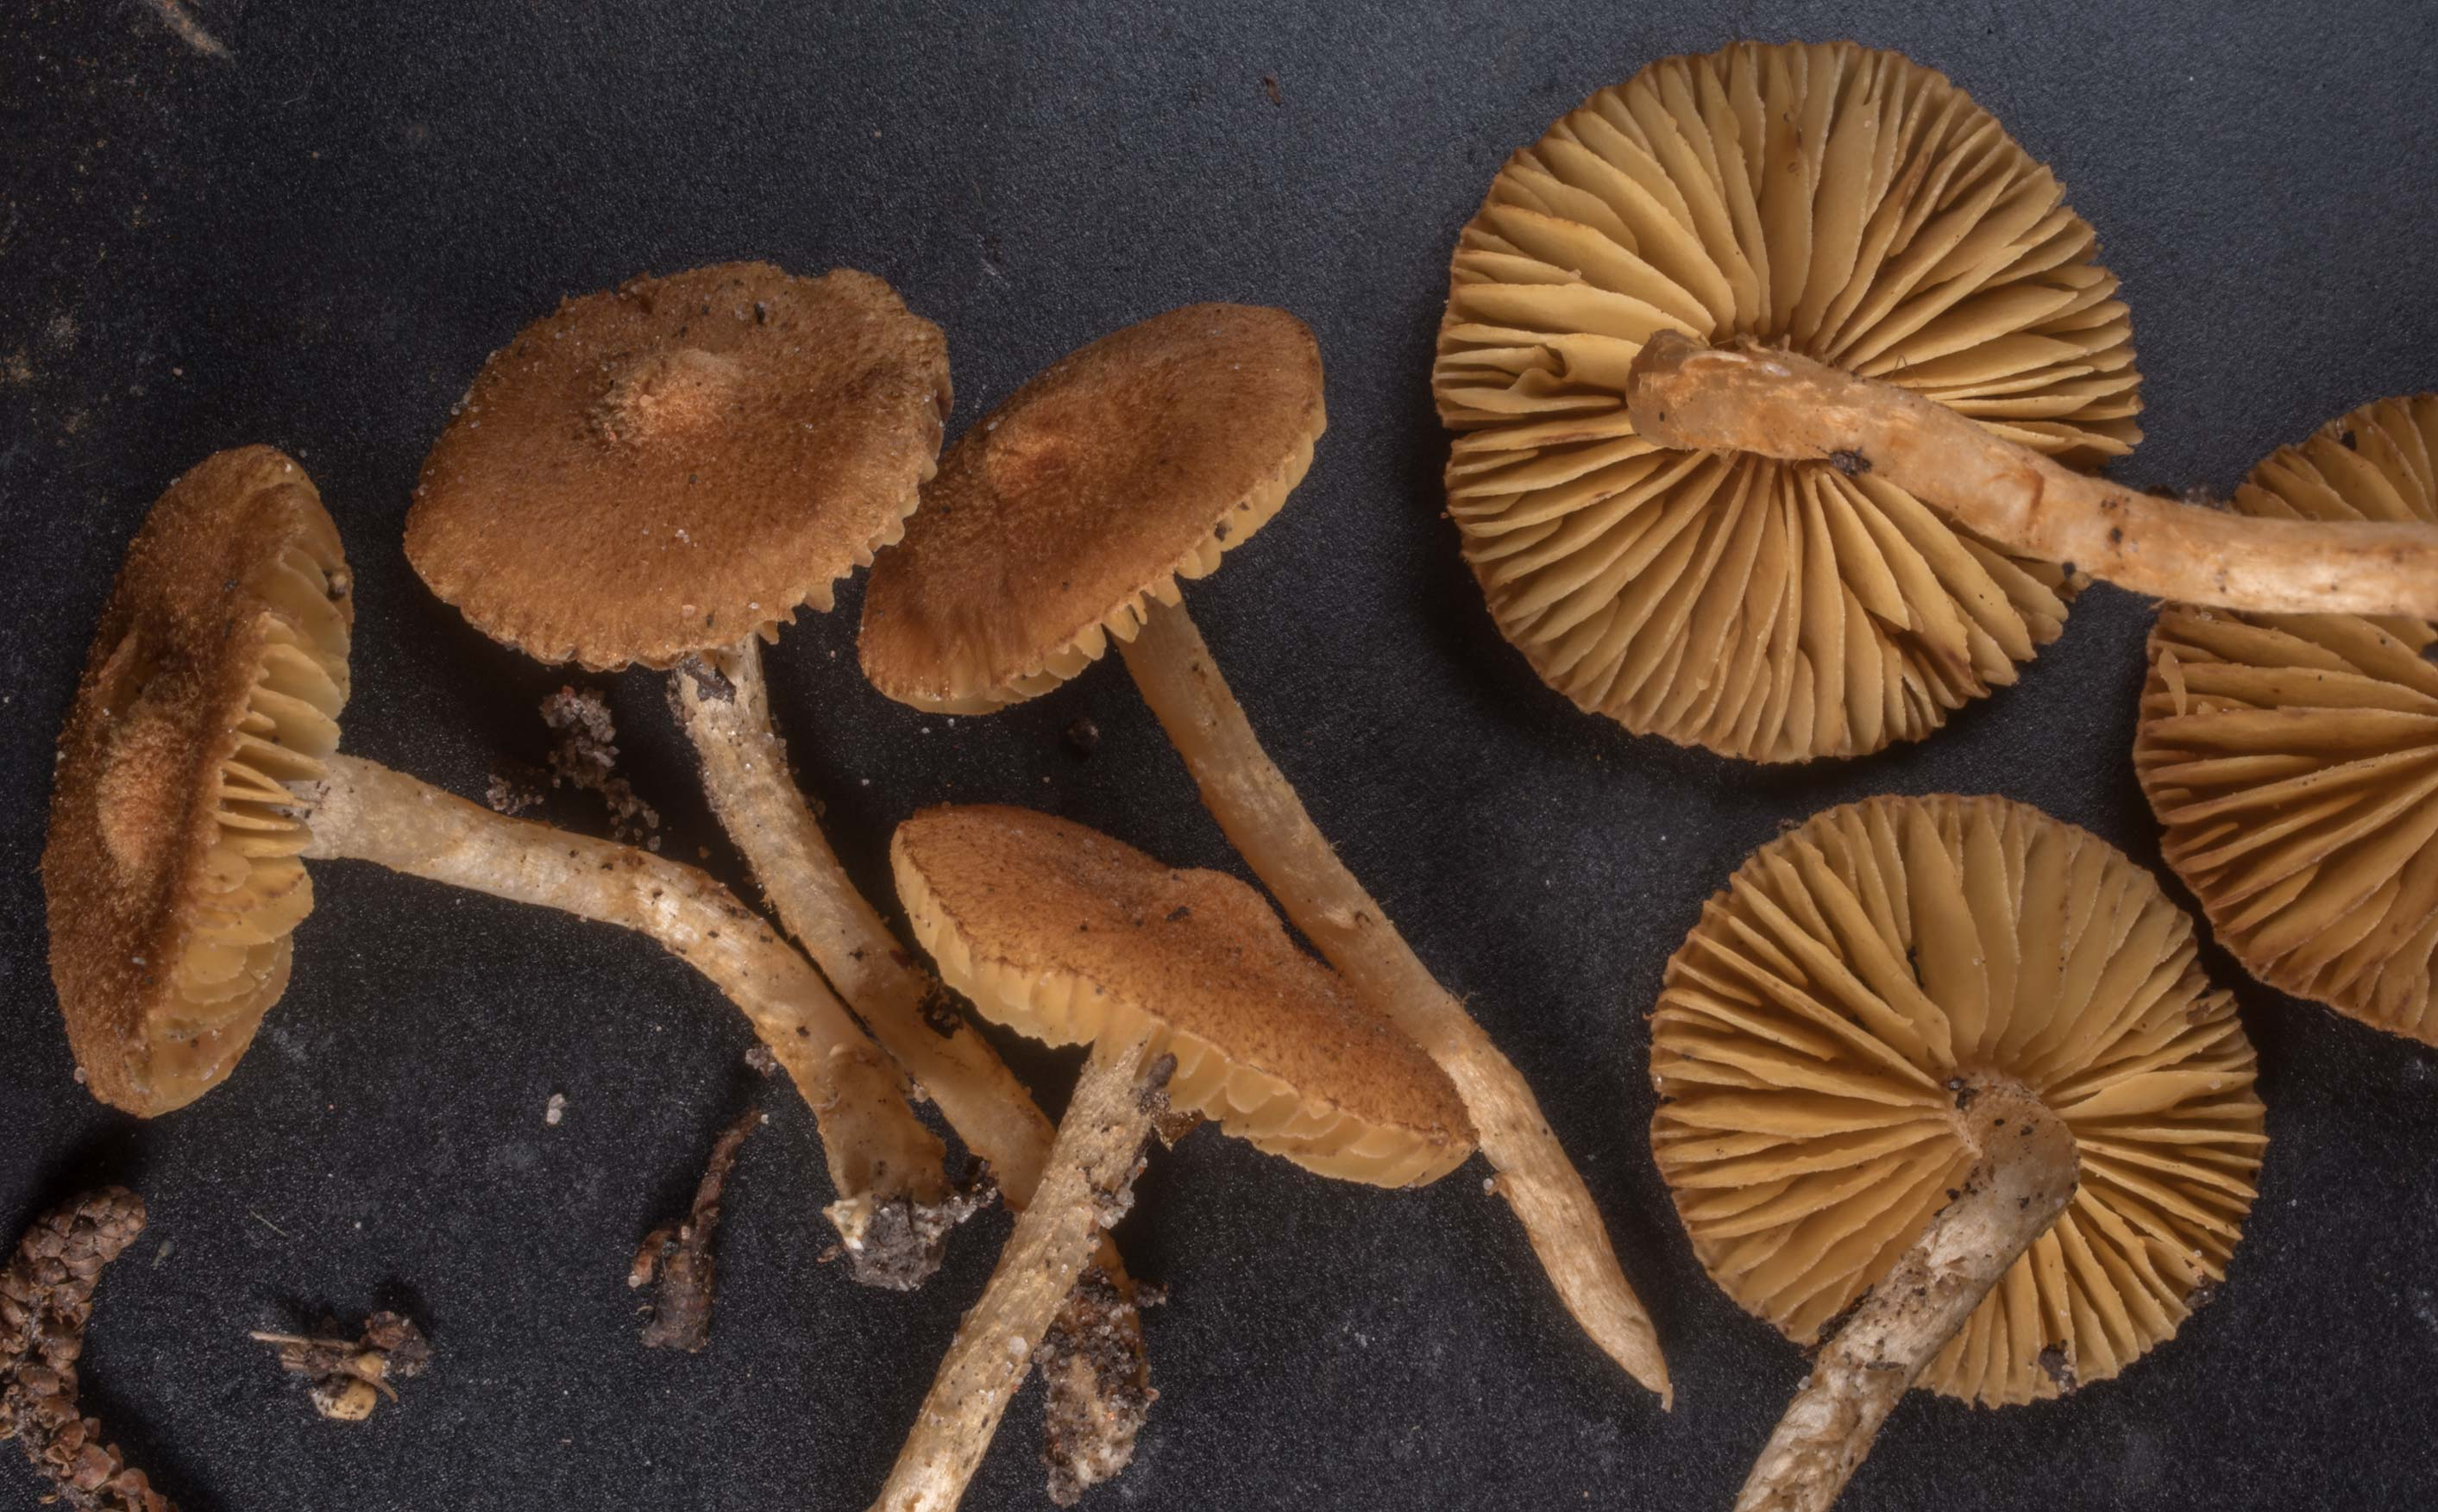 Fibrecap mushrooms (Inocybe) in a pine forest on...National Forest. Richards, Texas